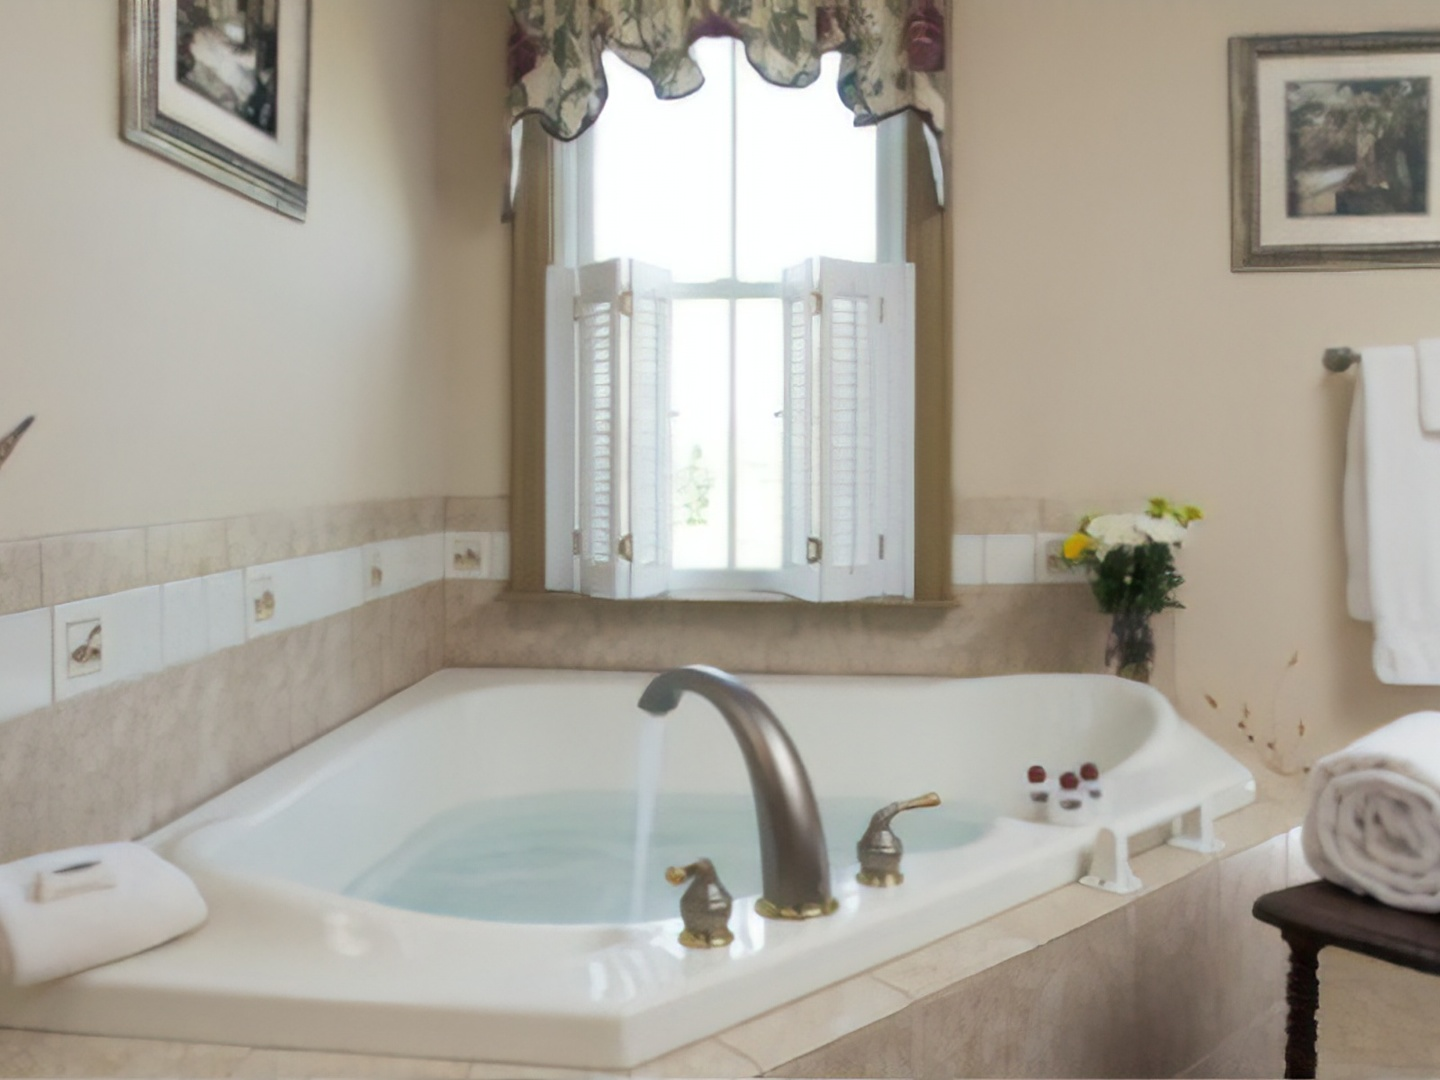 A large white tub sitting next to a sink at Pheasant Field Bed and Breakfast.